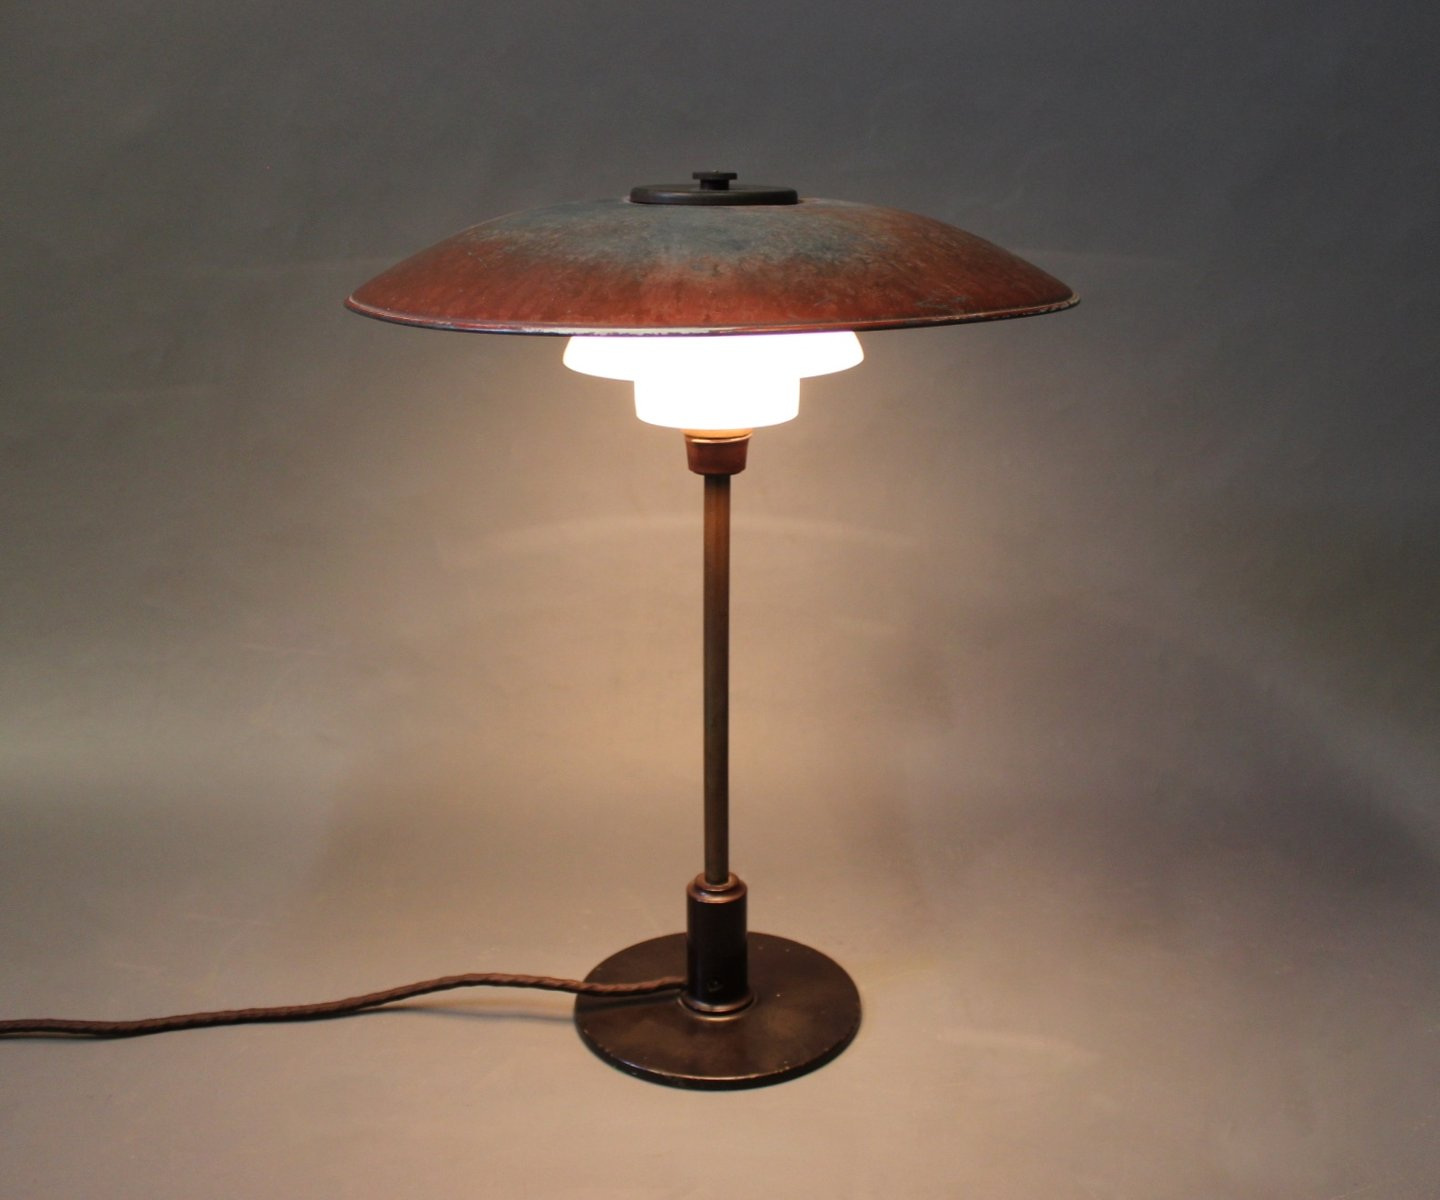 Vintage danish ph 35 25 table lamp by poul henningsen for Taliesin 1 table lamp